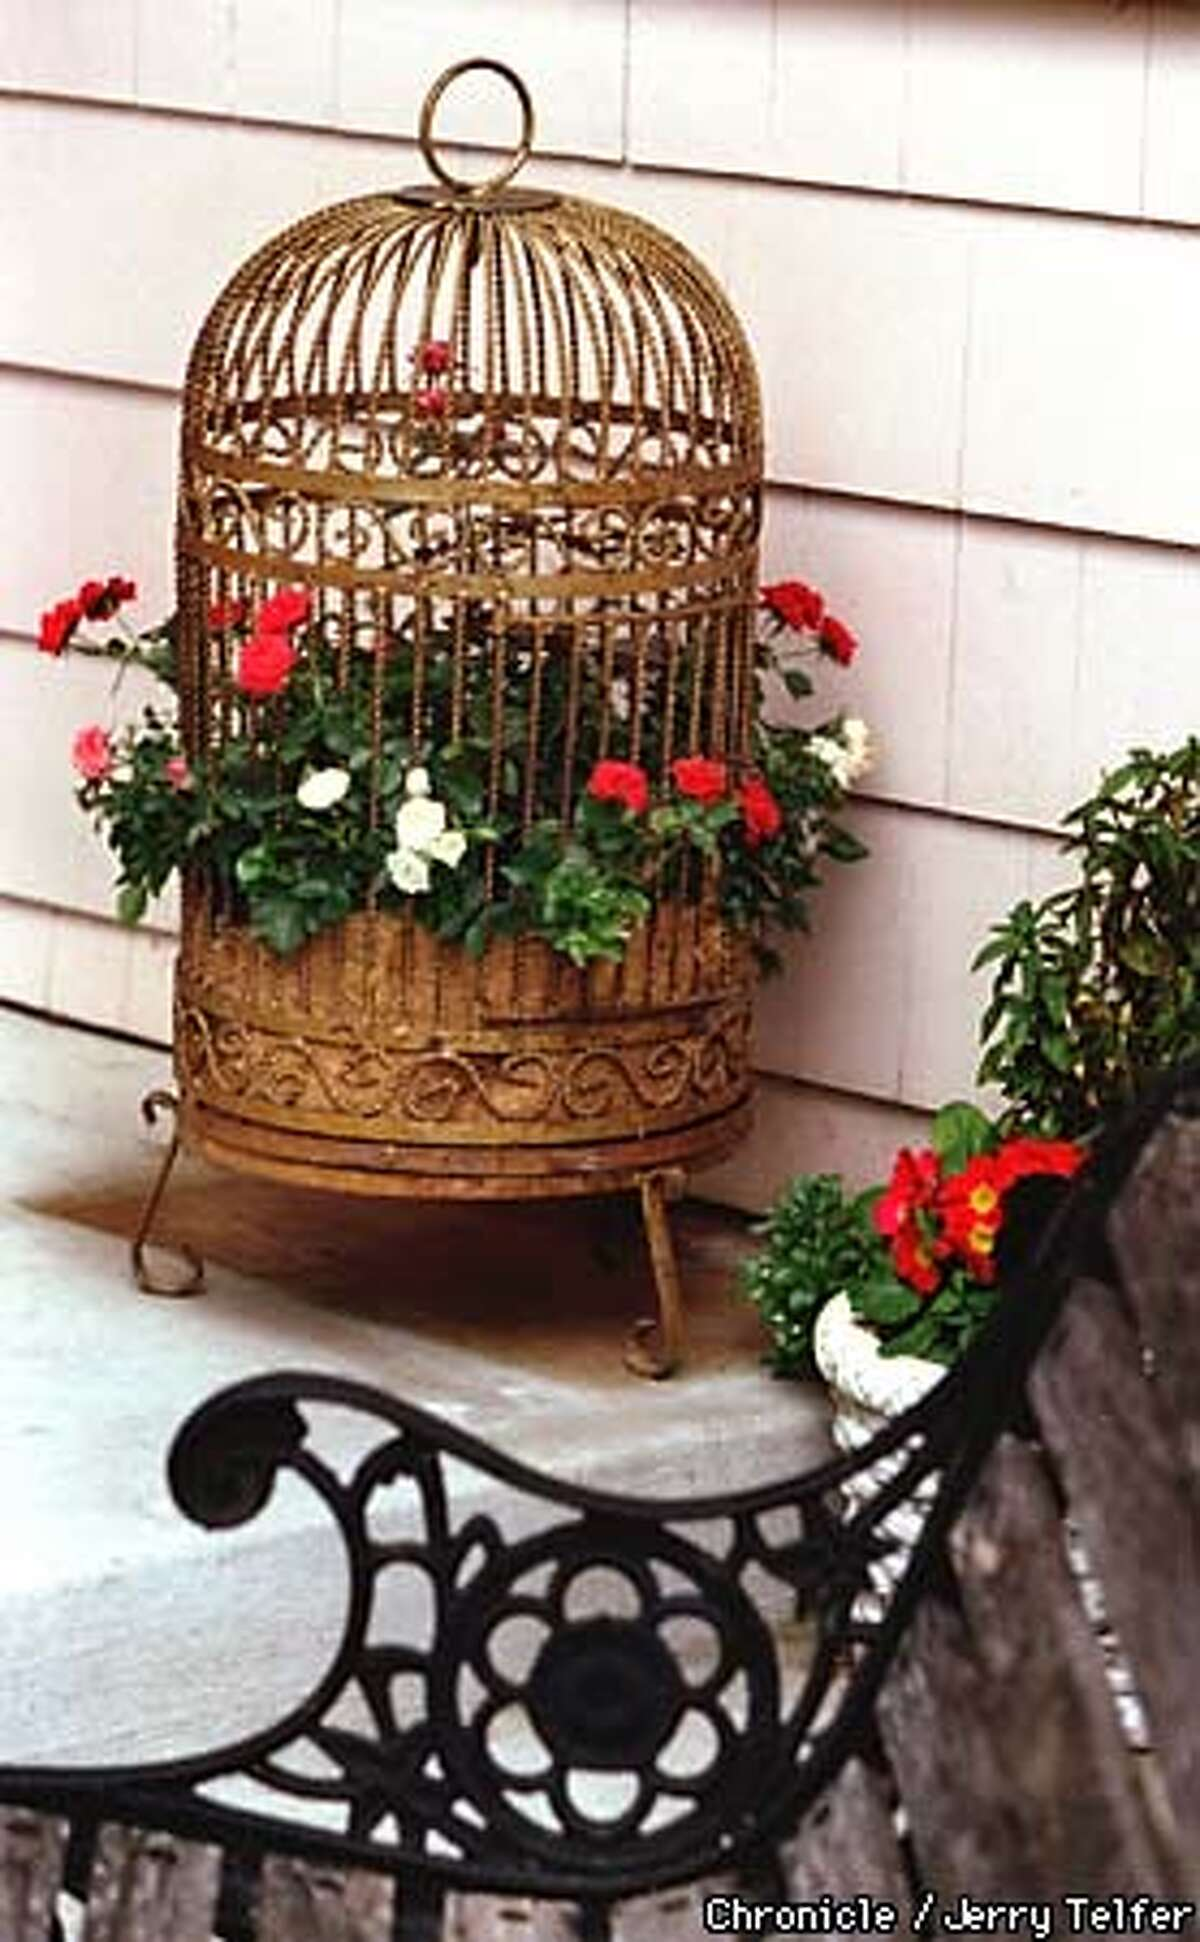 Repurposed wrought iron birdcage becomes a planter to accent a porch or patio. 10 Edgewater Ct. - San Rafael, CA BY JERRY TELFER/THE CHRONICLE